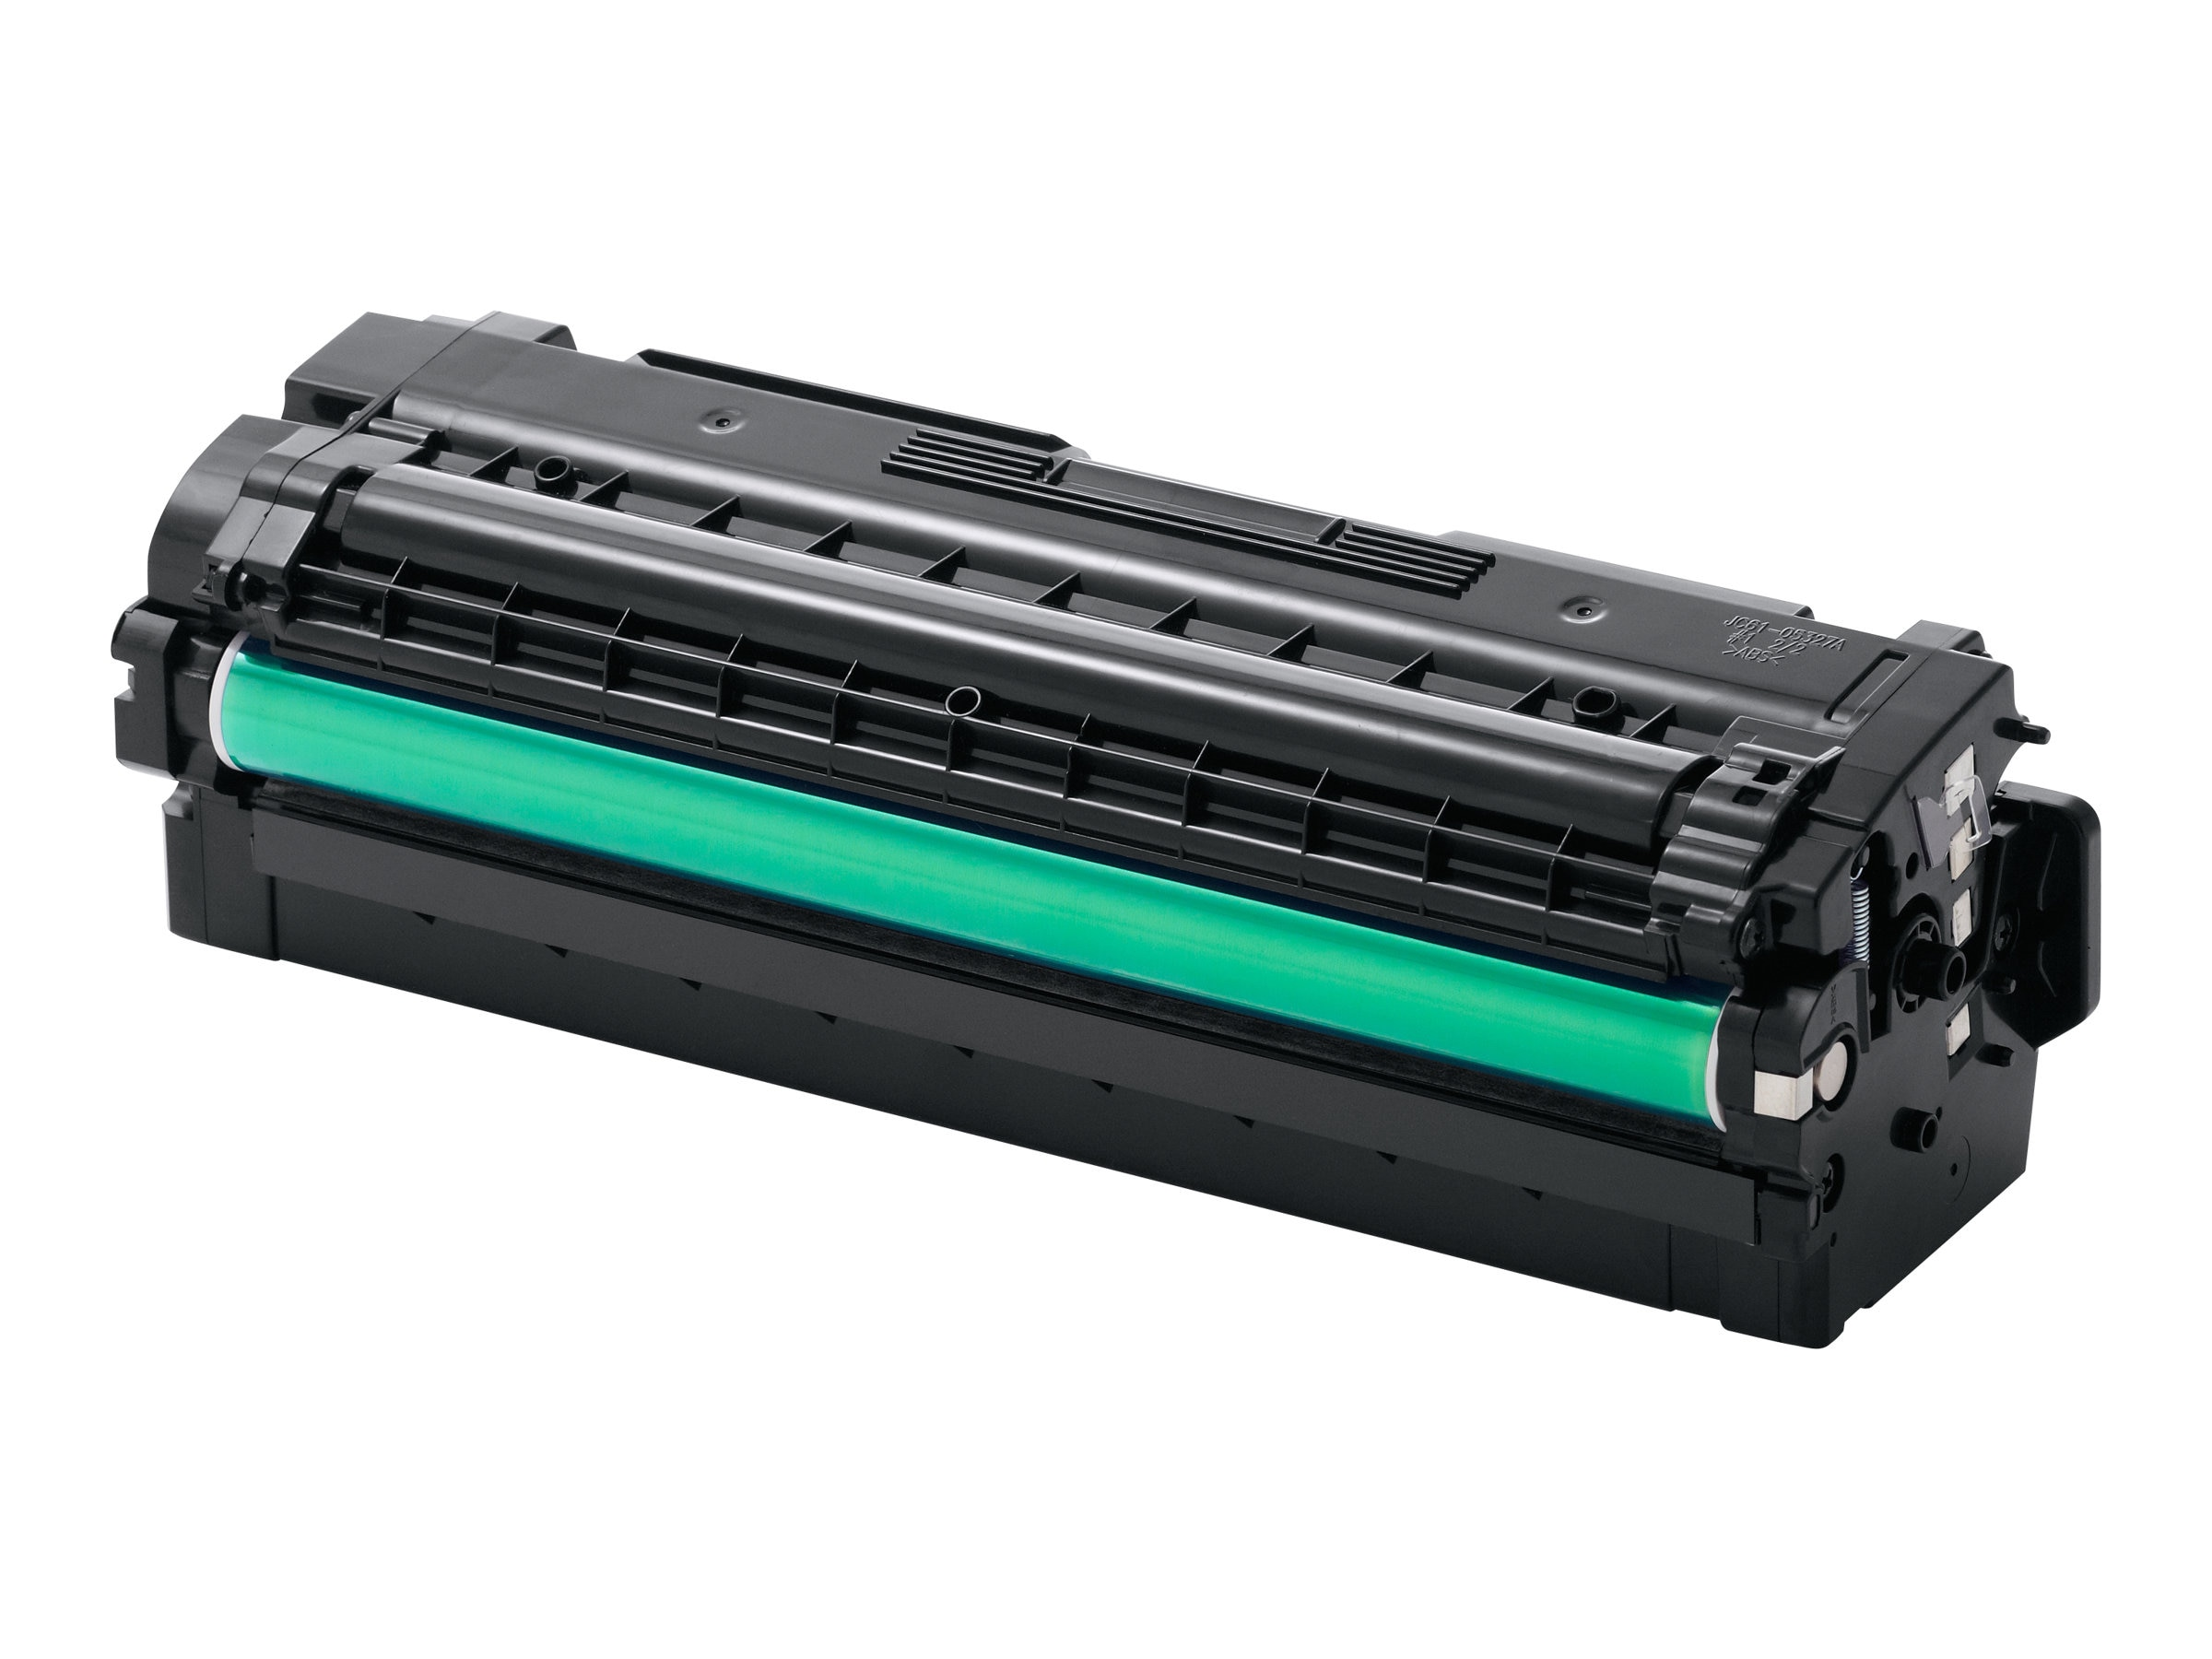 Samsung Black Toner Cartridge for CLP-680ND Color Laser Printer & CLX-6260FW & CLX-6260FD Color MFPs, CLT-K506S